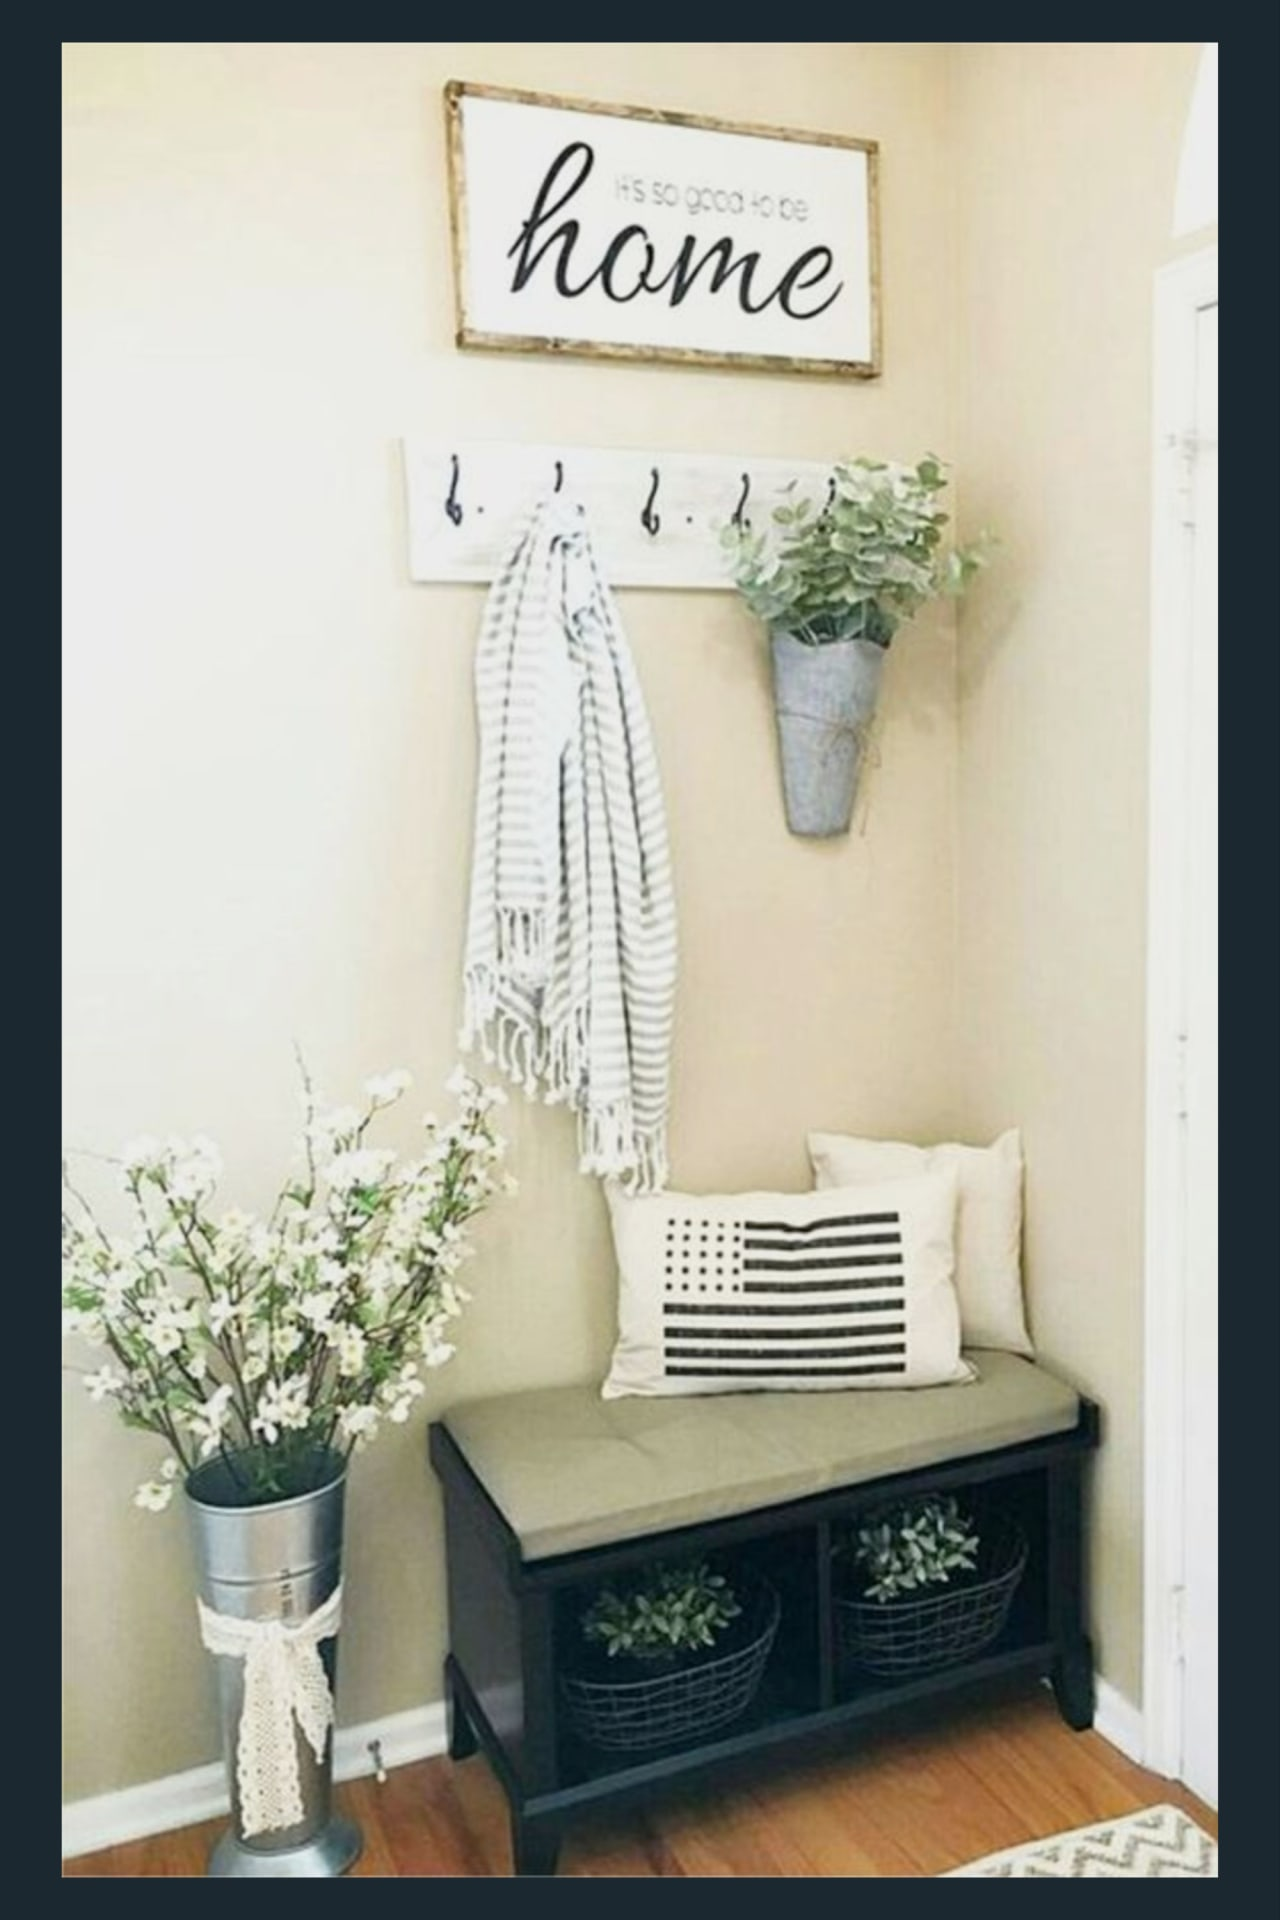 Foyer decorating ideas - Small cottage farmhouse foyer decorating ideas - love this small corner entryway decor - perfect for a small house or small apartment entry